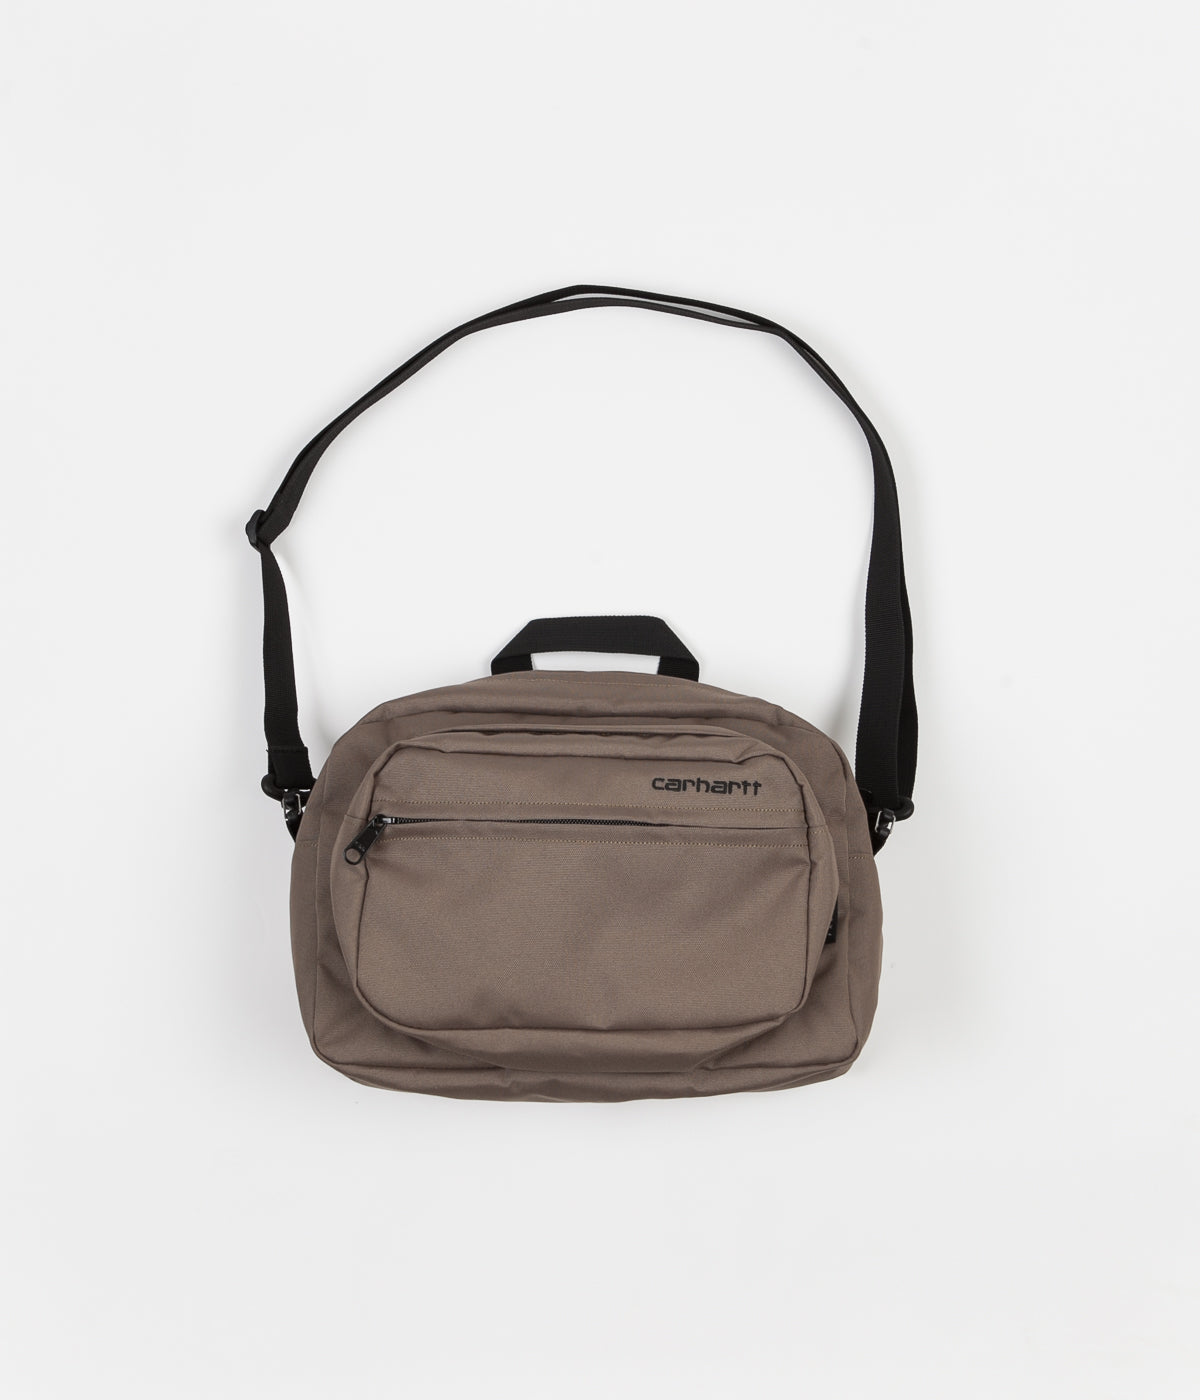 Carhartt Payton Shoulder Bag - Brass / Black